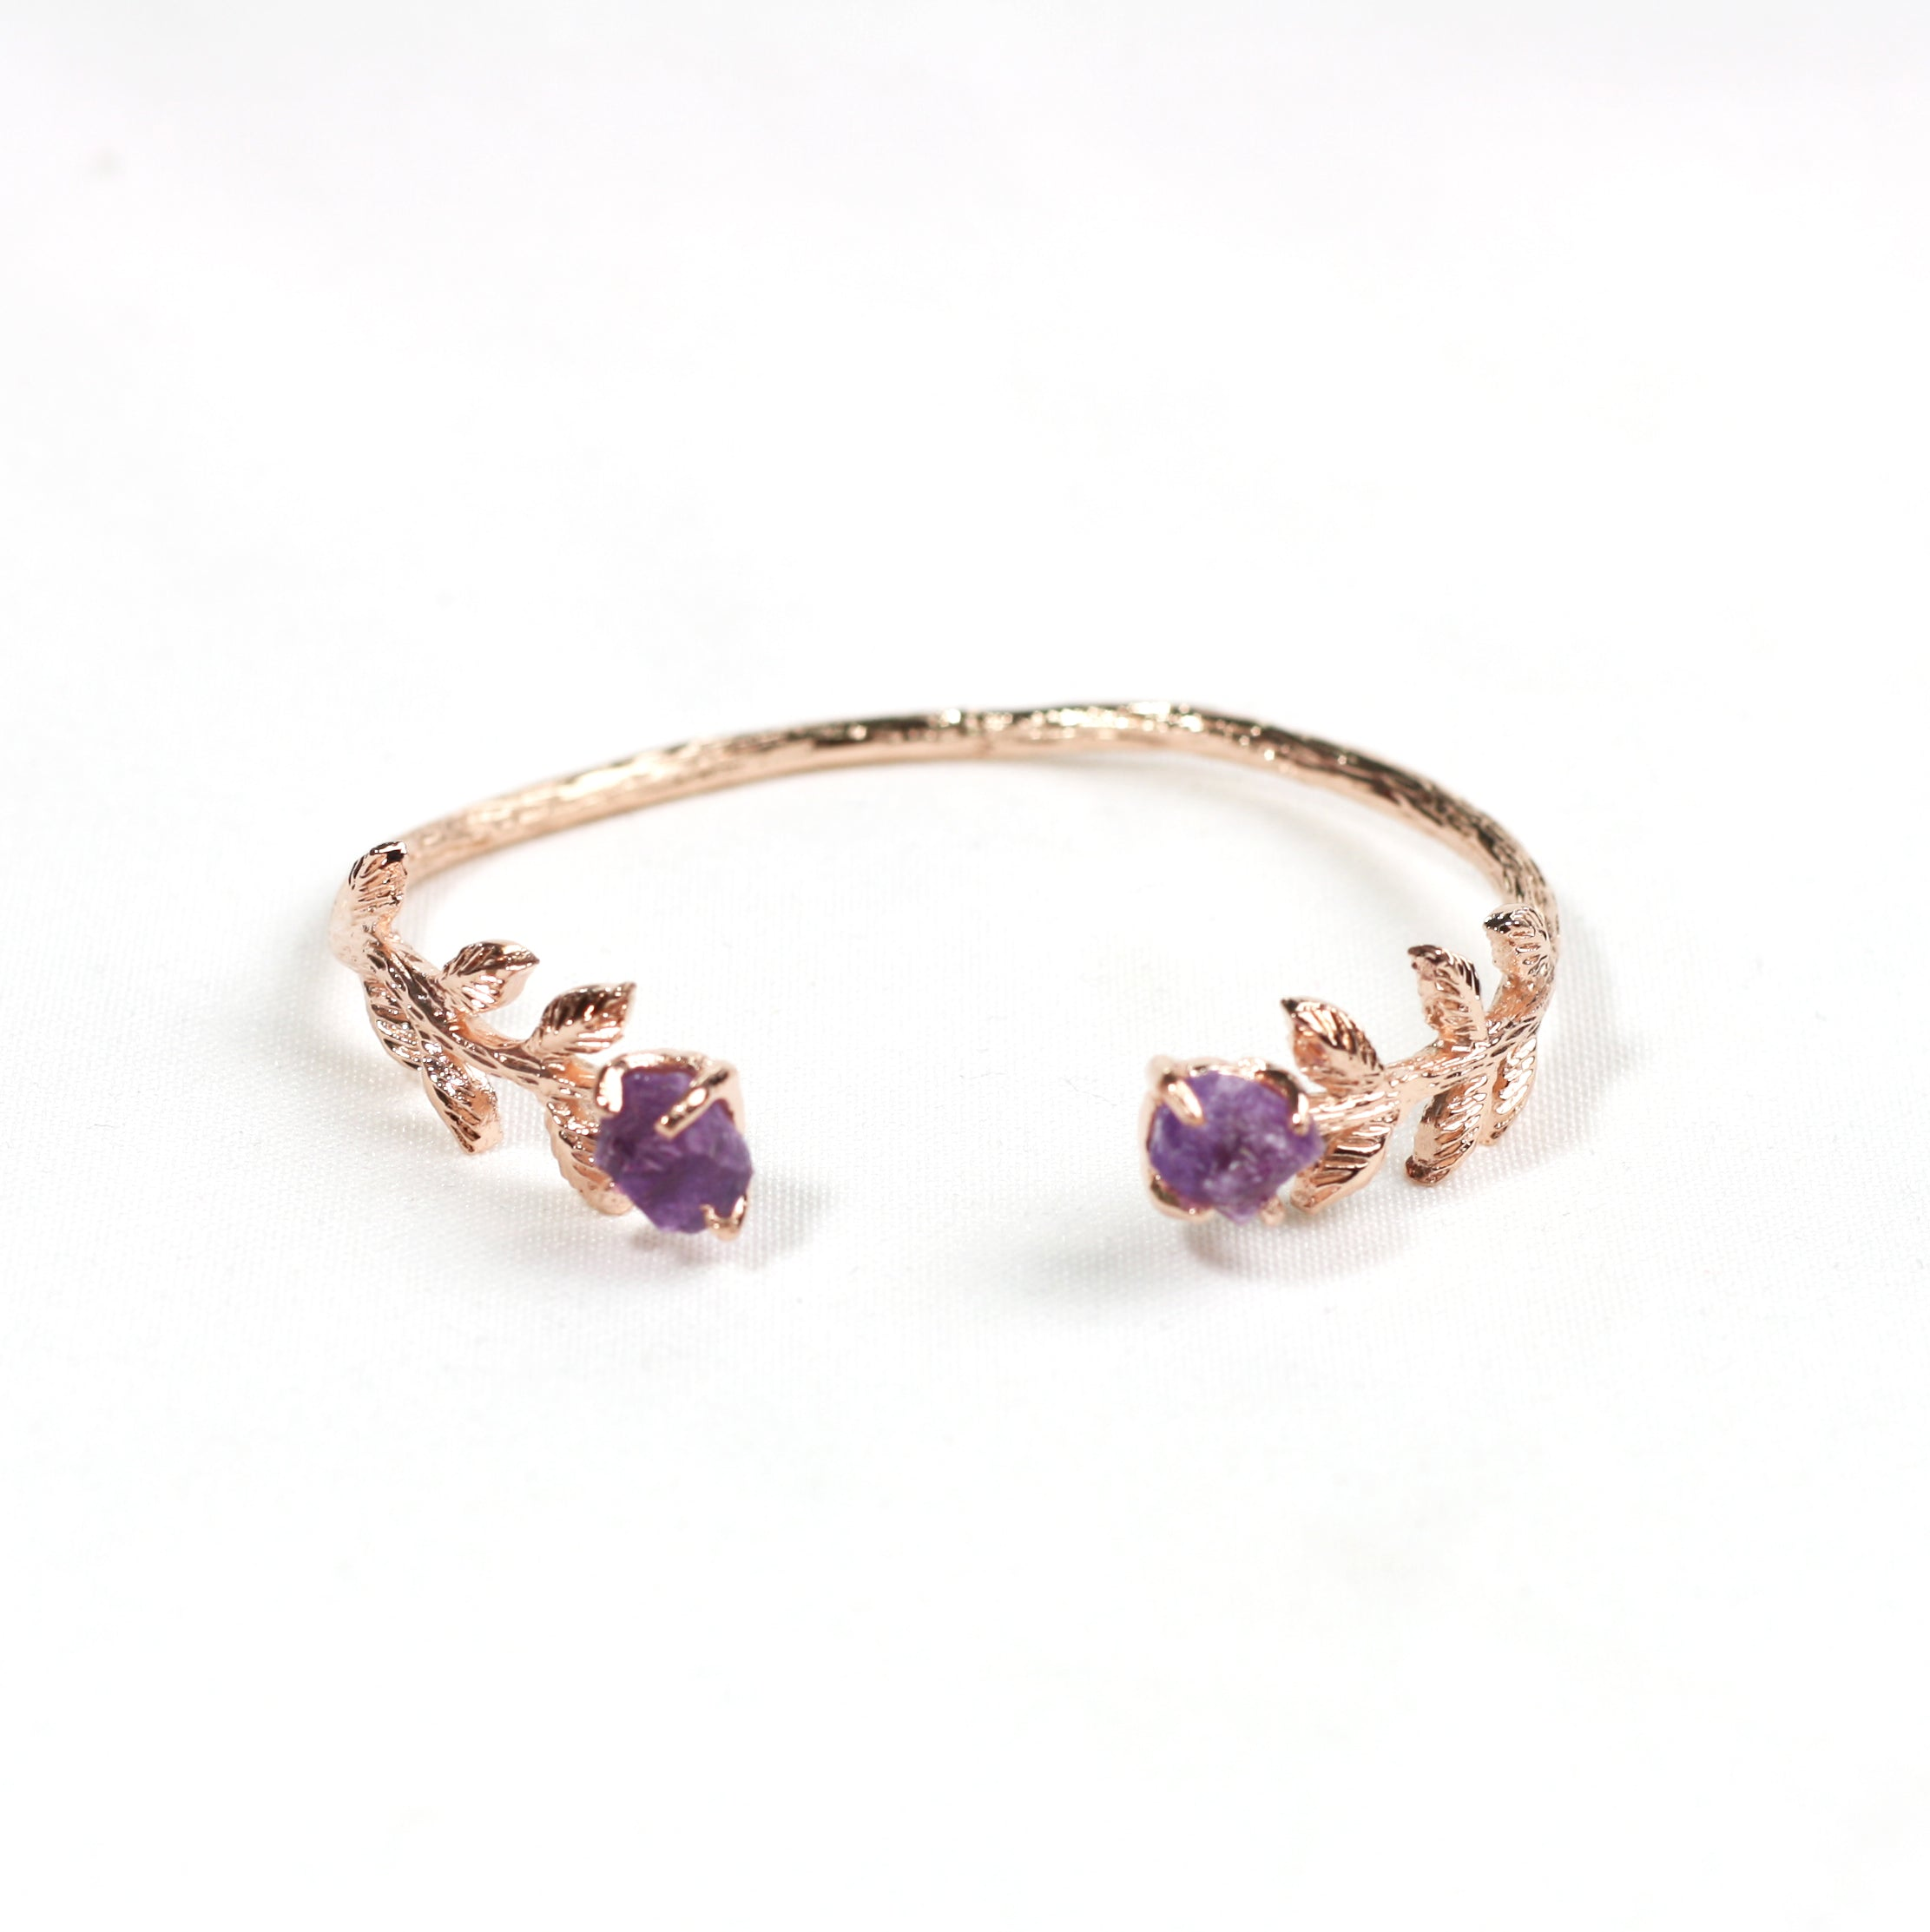 Leaf Bangle - Pink Amethyst (Rose Gold)